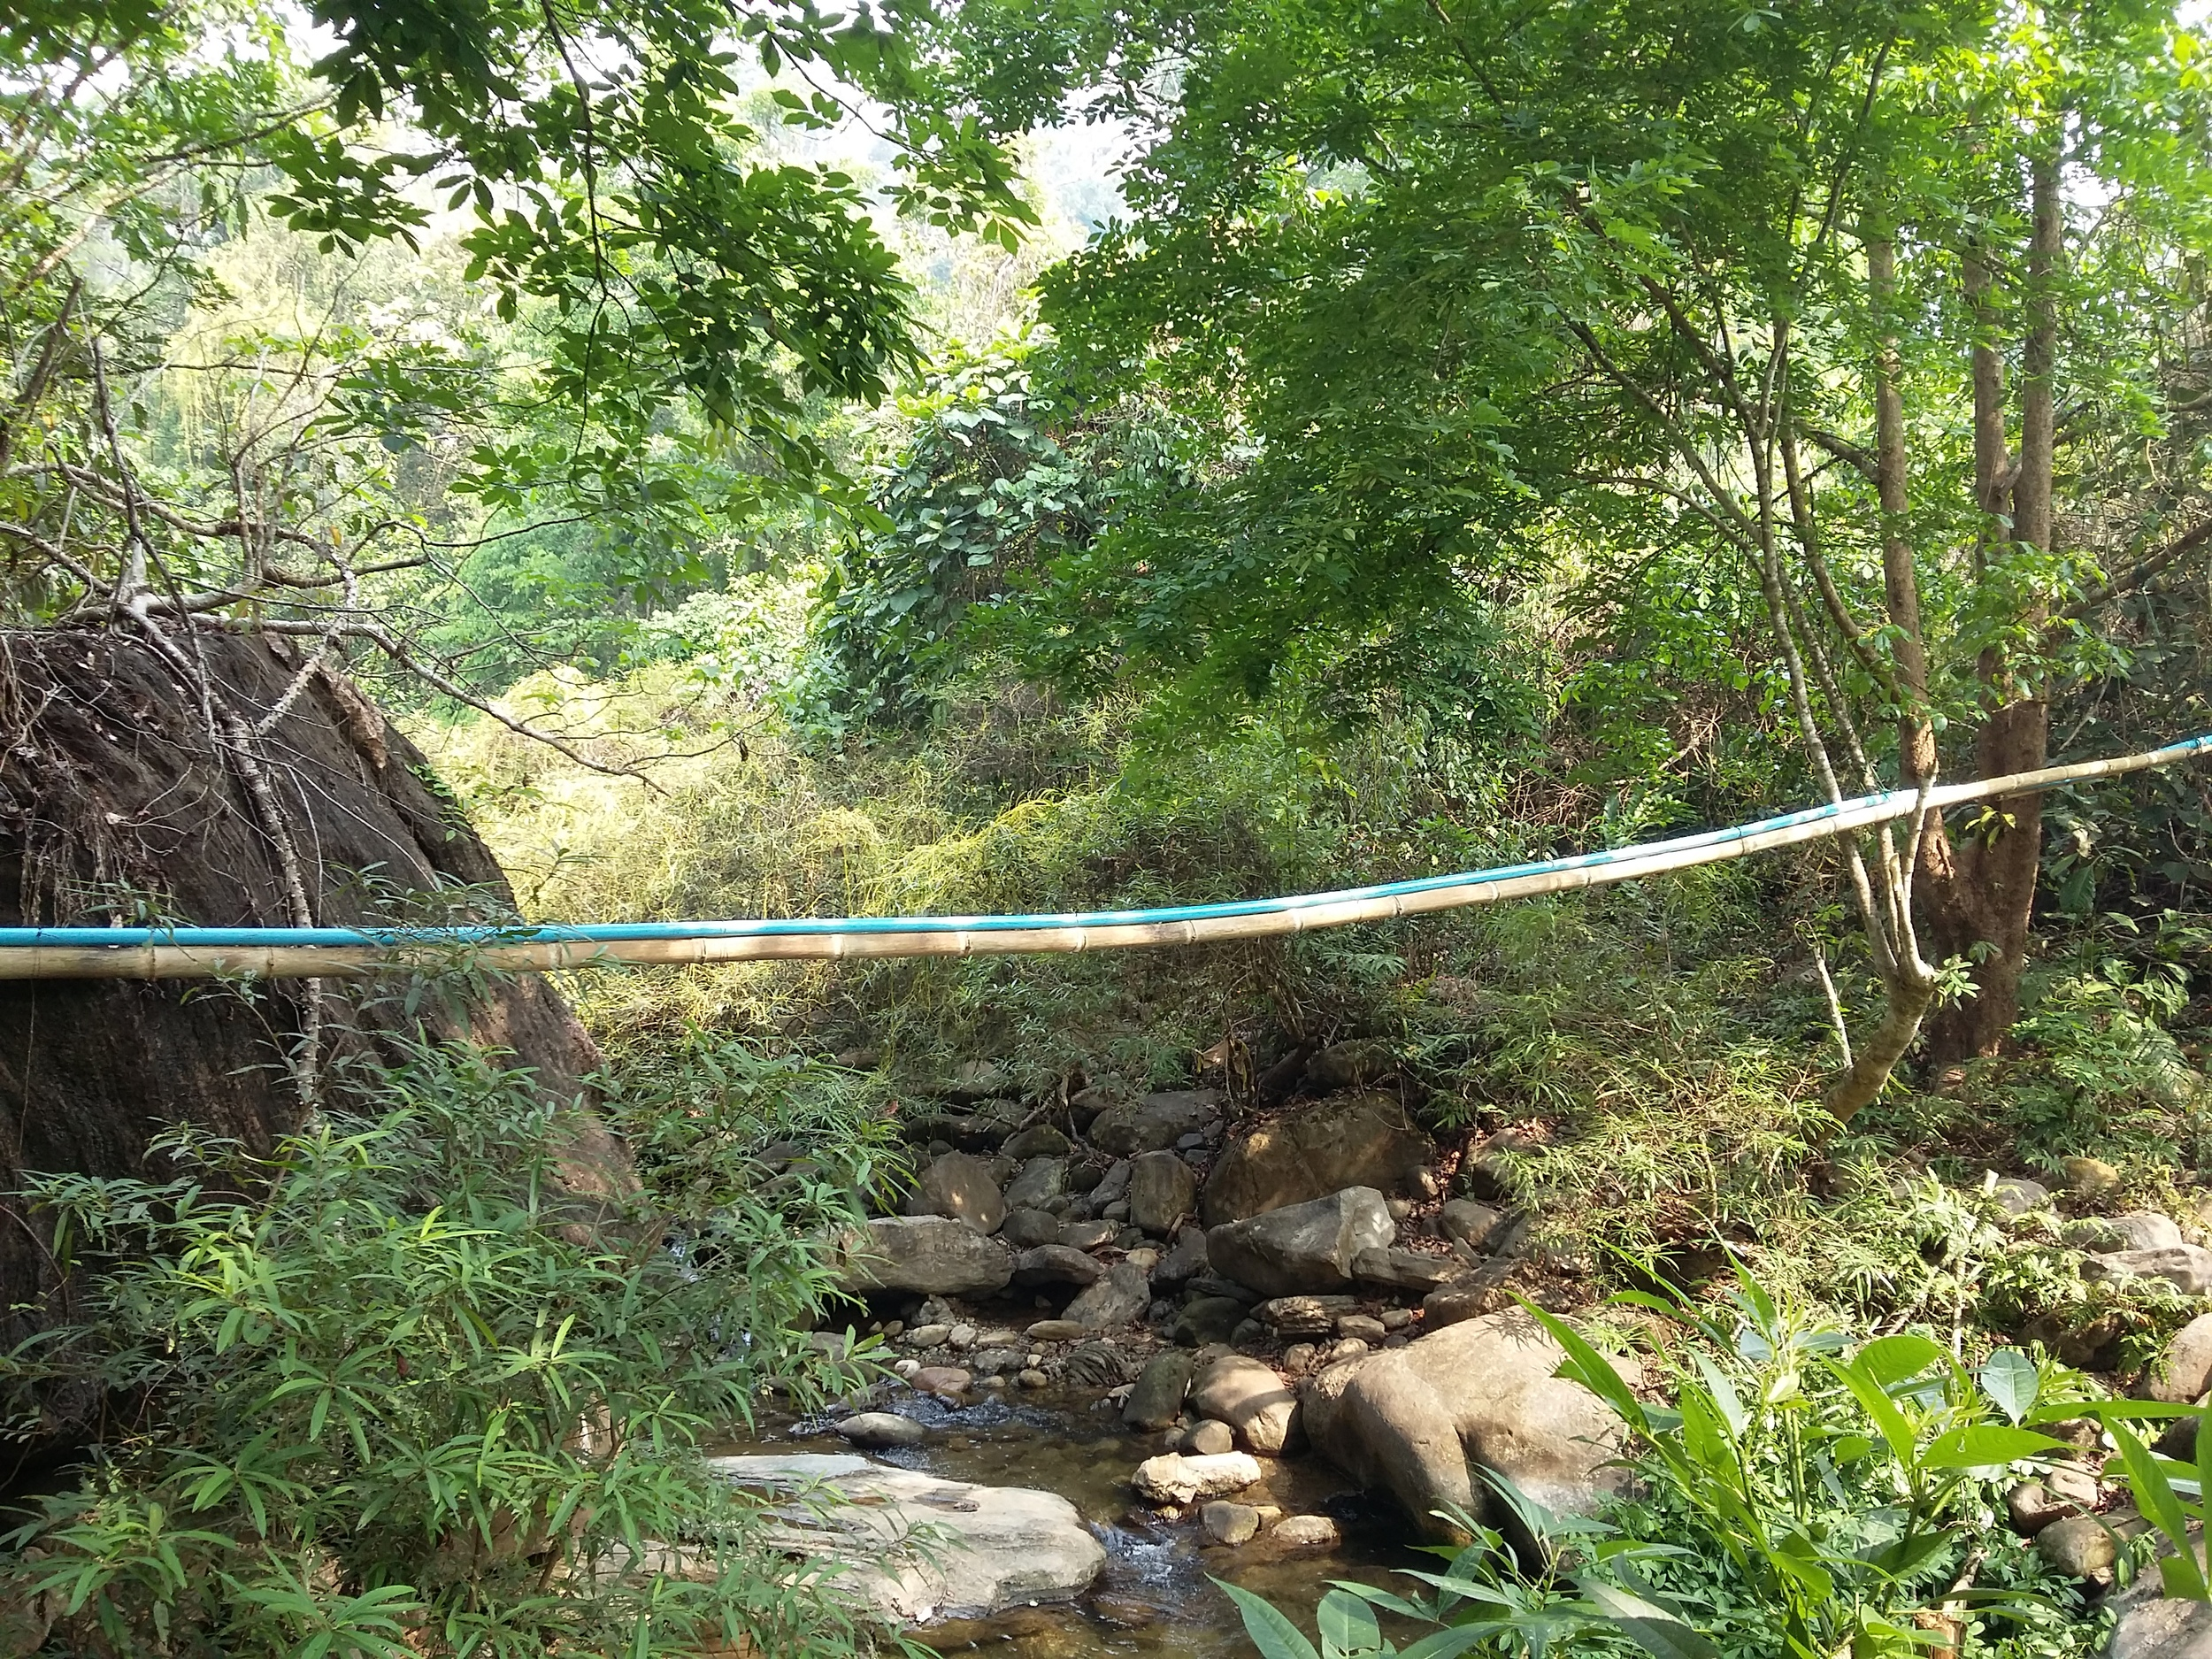 PVC attached to Bamboo used to span a river